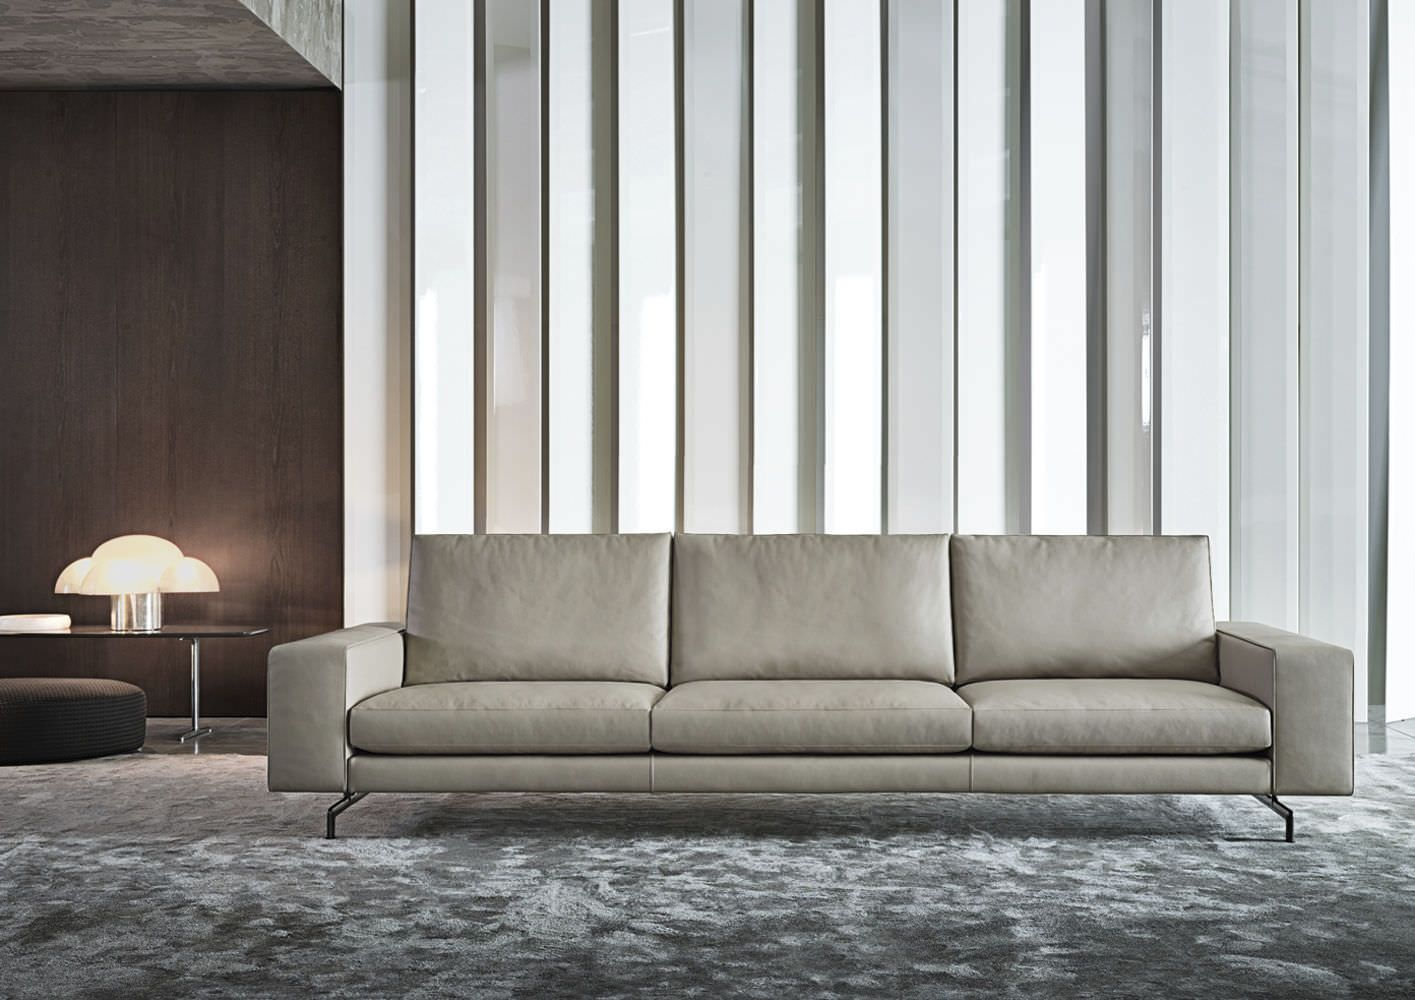 Contemporary sofa / by Rodolfo Dordoni - SHERMAN - Minotti